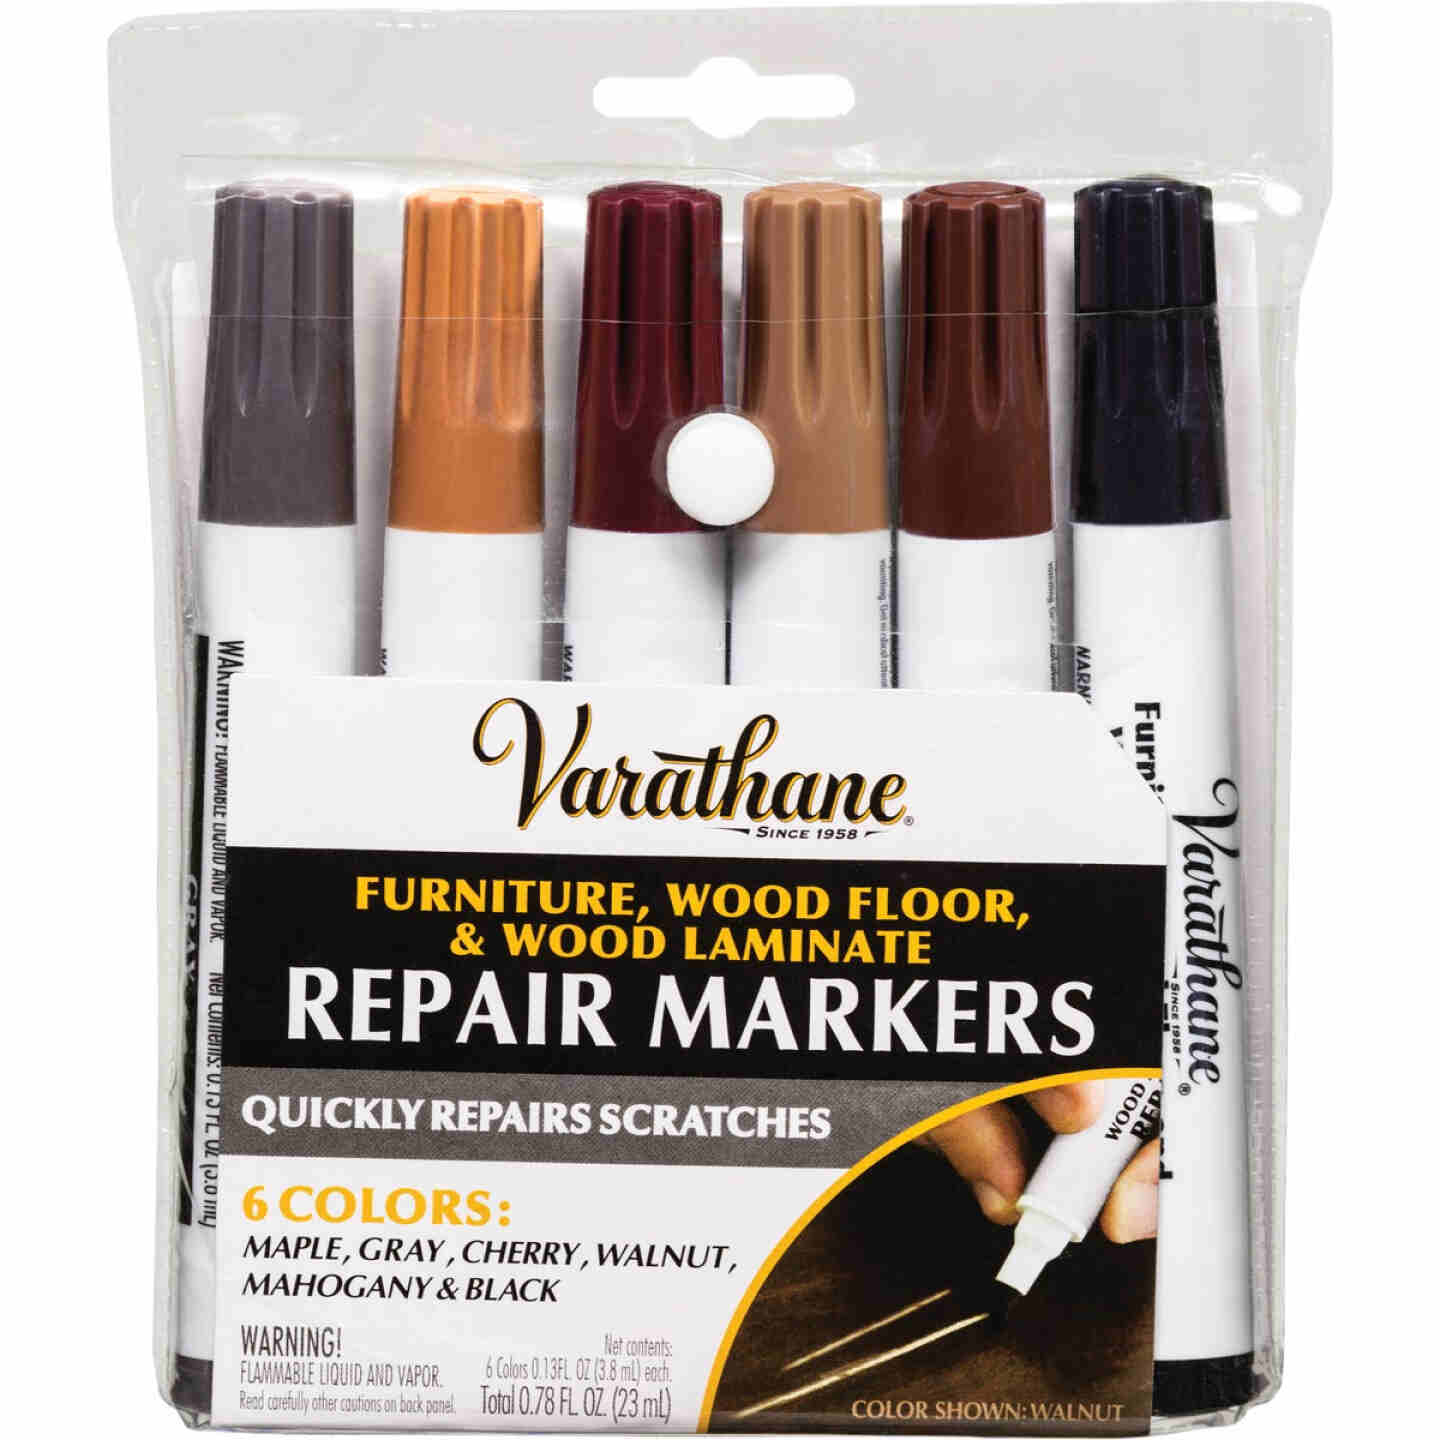 Varathane Wood Floor, Furniture & Laminate Repair Marker (6-Count) Image 1